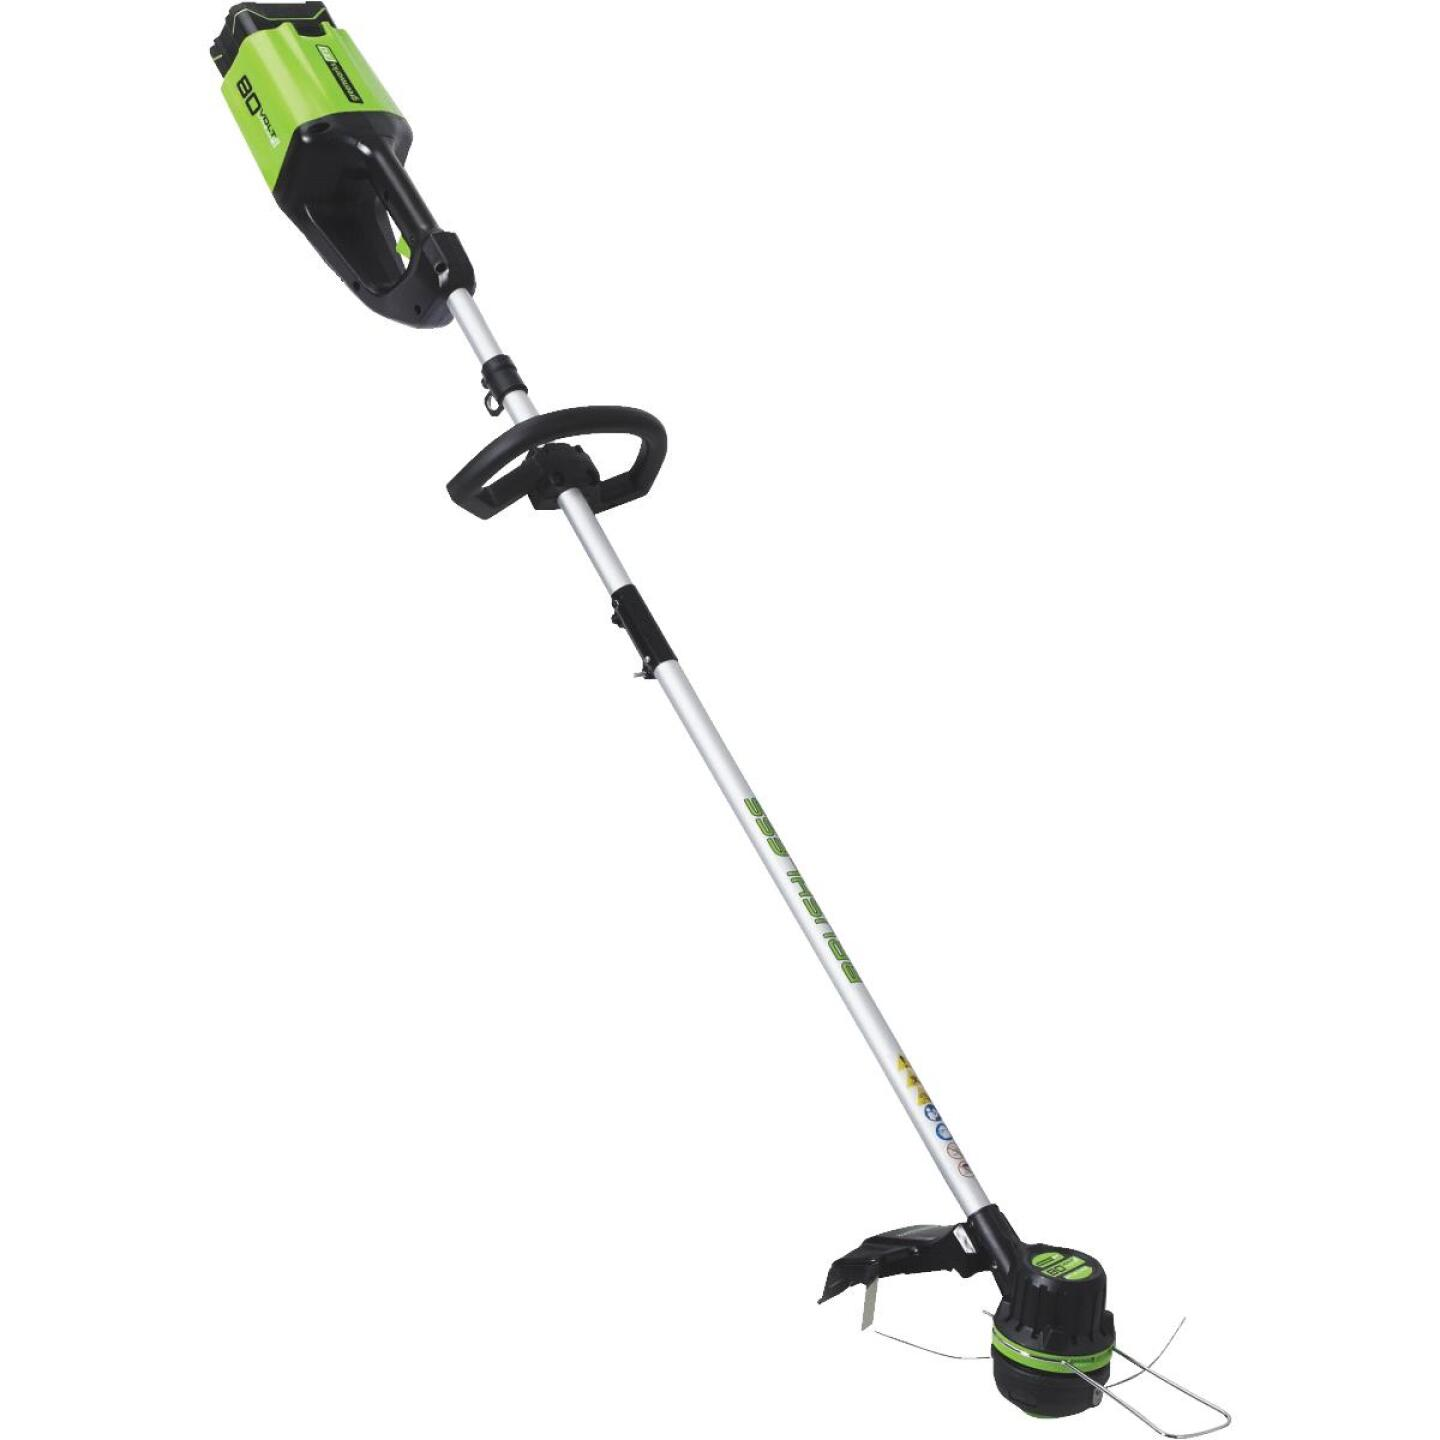 Greenworks Pro 80V 16 In. DigiPro Lithium Ion Straight Cordless String Trimmer Image 4